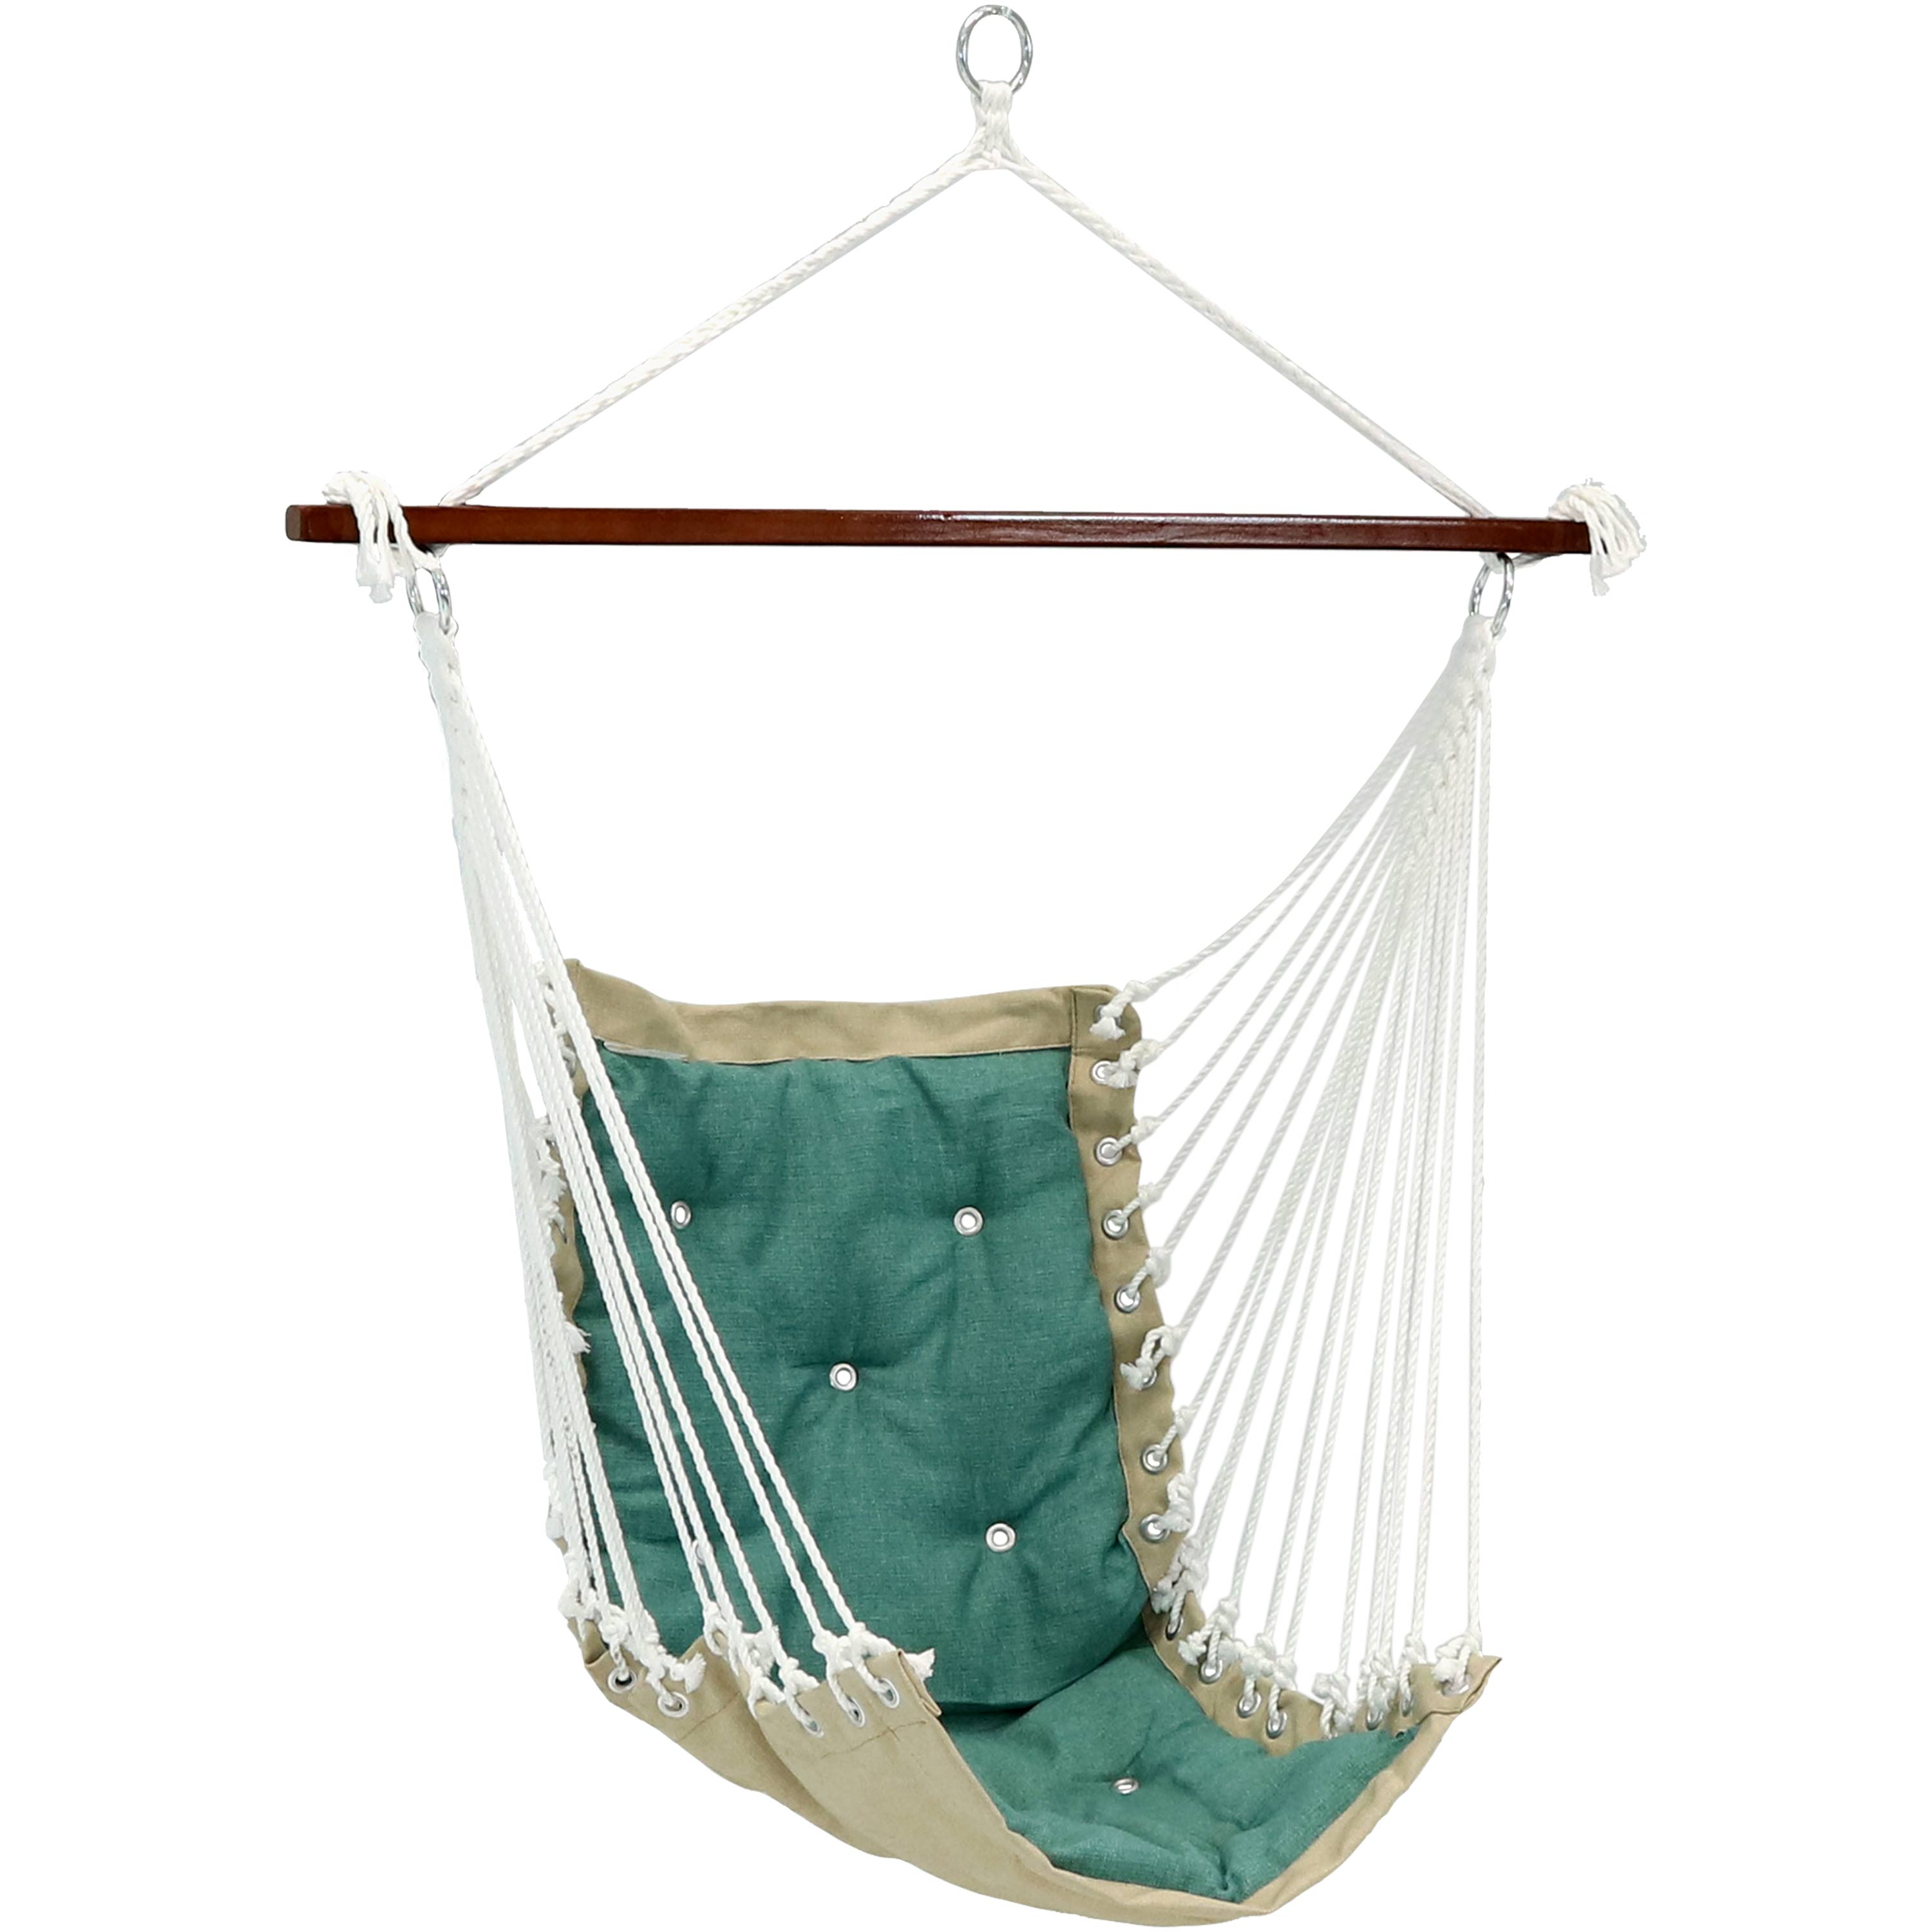 Sturdy 300 Pound Weight Capacity Gray Indoor Or Outdoor